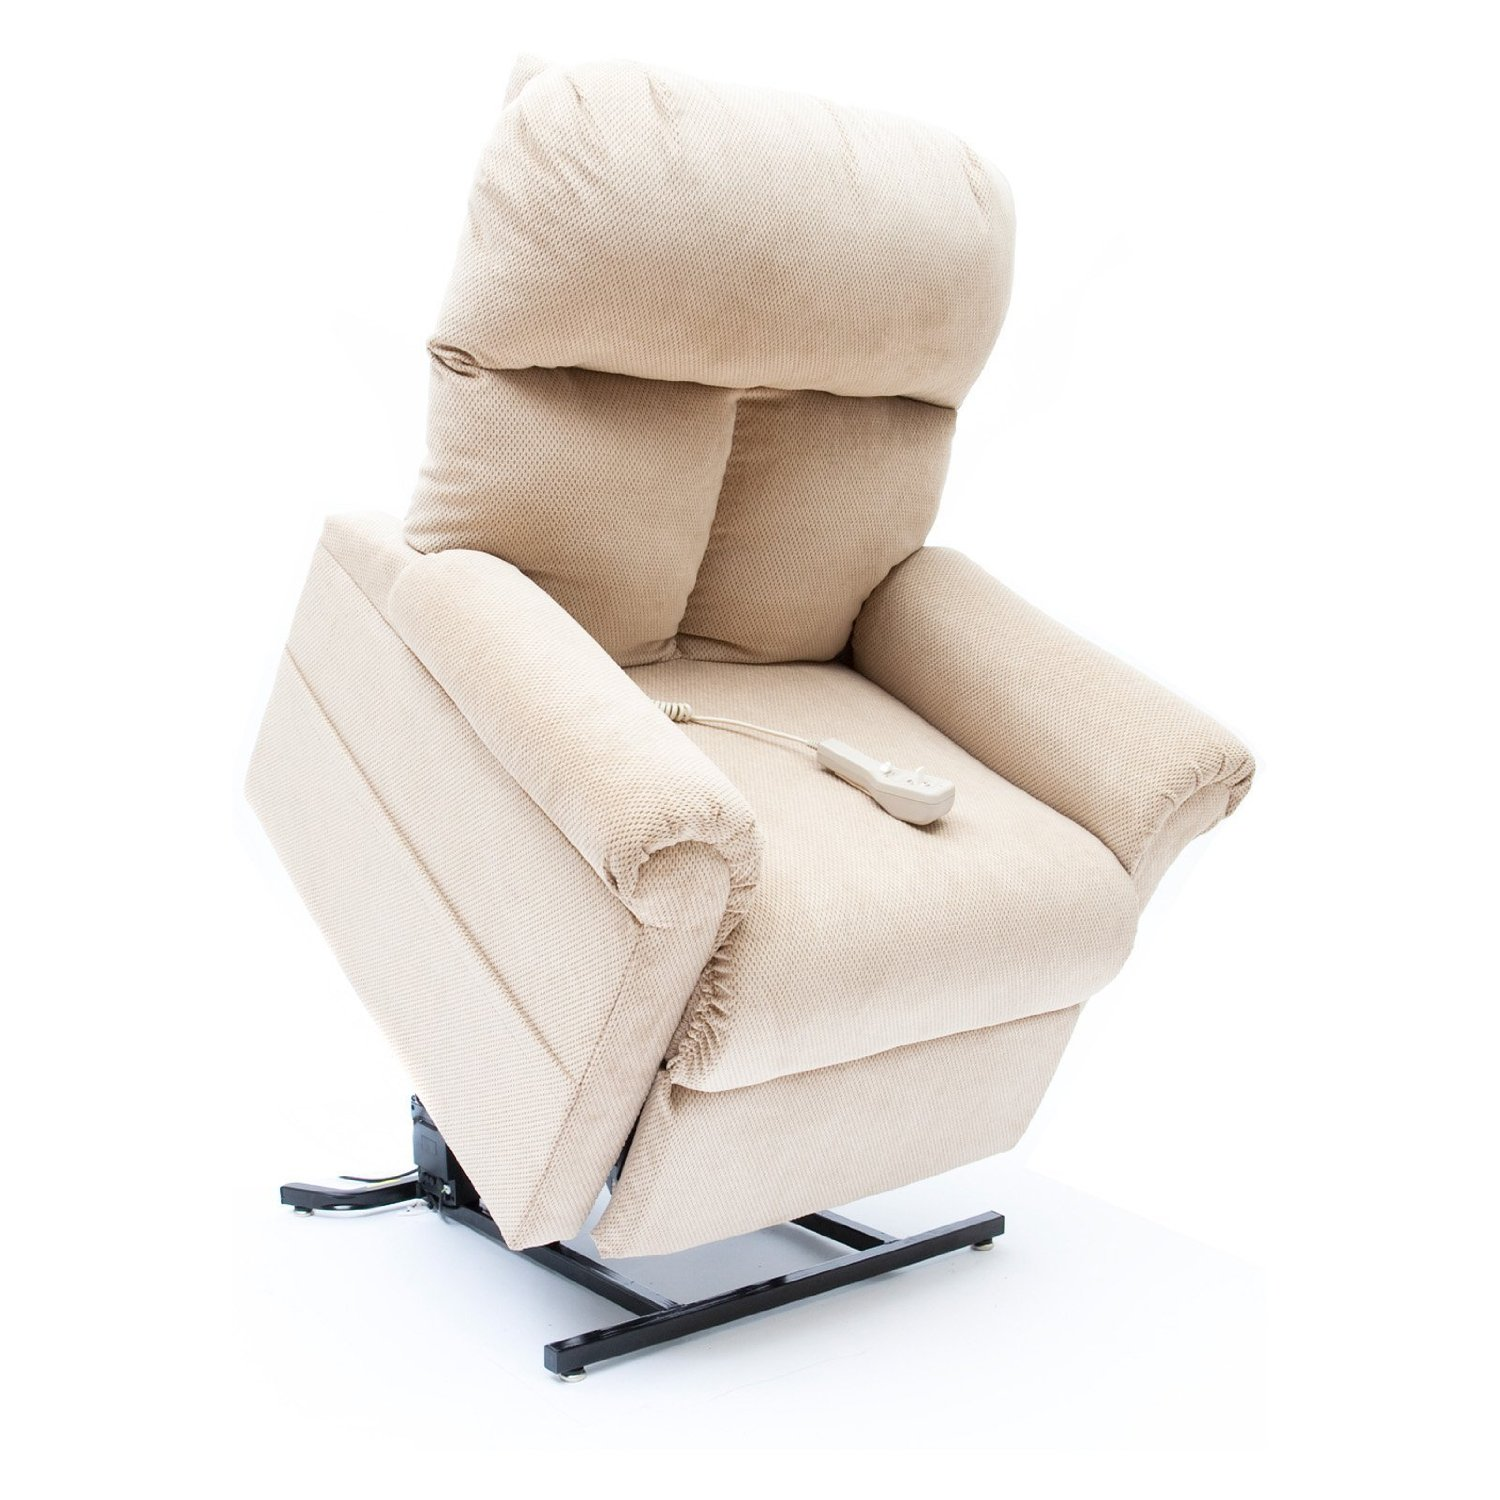 mega motion lift chairs papasan for sale new fawn tan fabric easy comfort lc 100 power chair